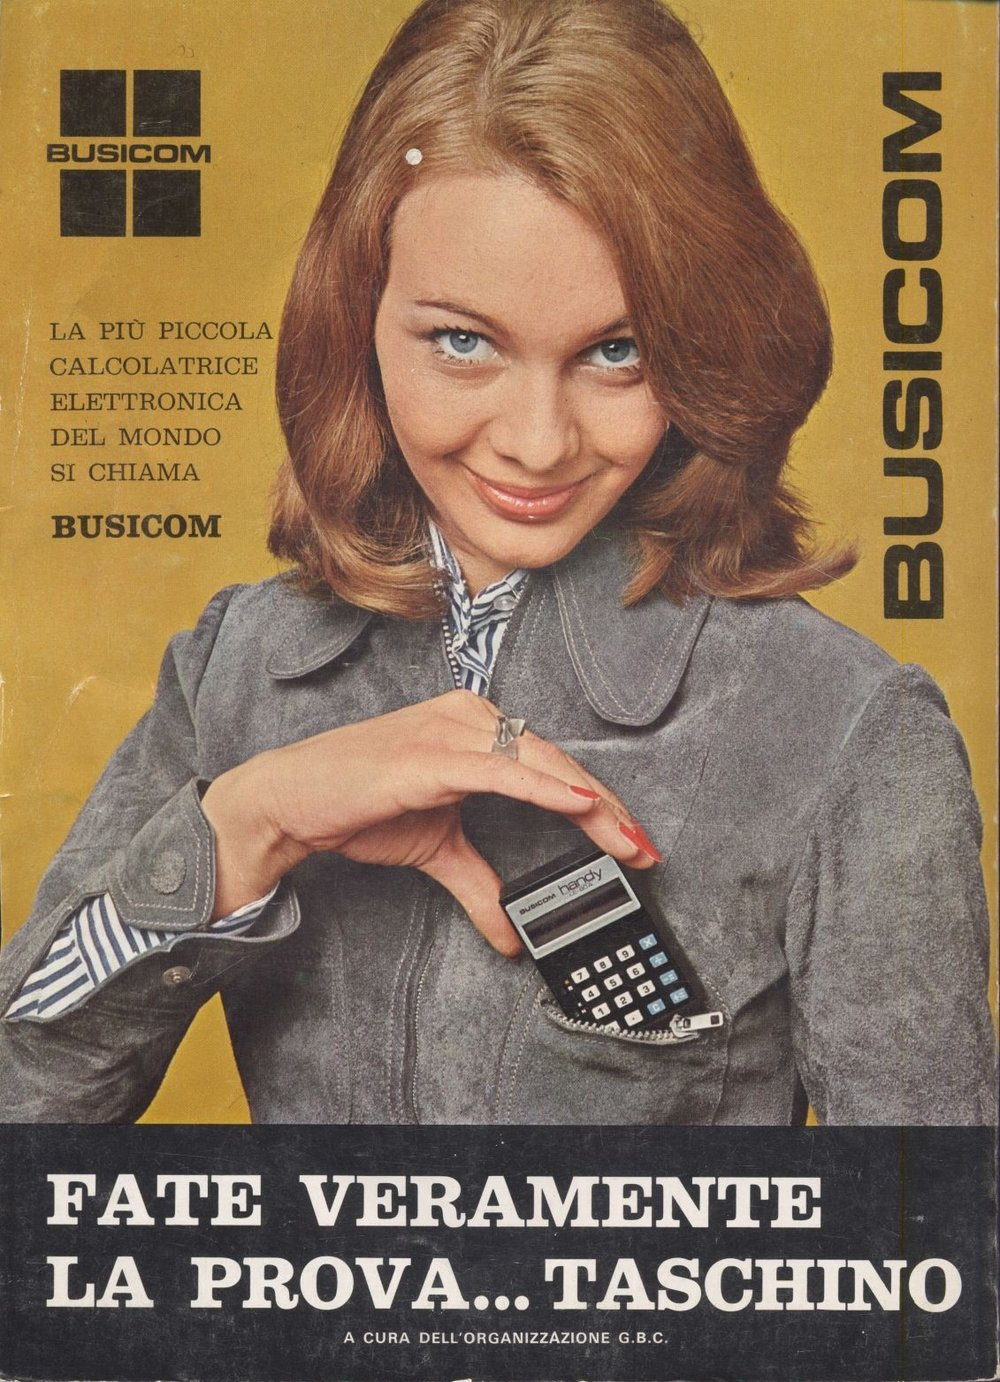 Early 1970's Italian calculator advert, posted to Flickr by Matthew Rutledge.